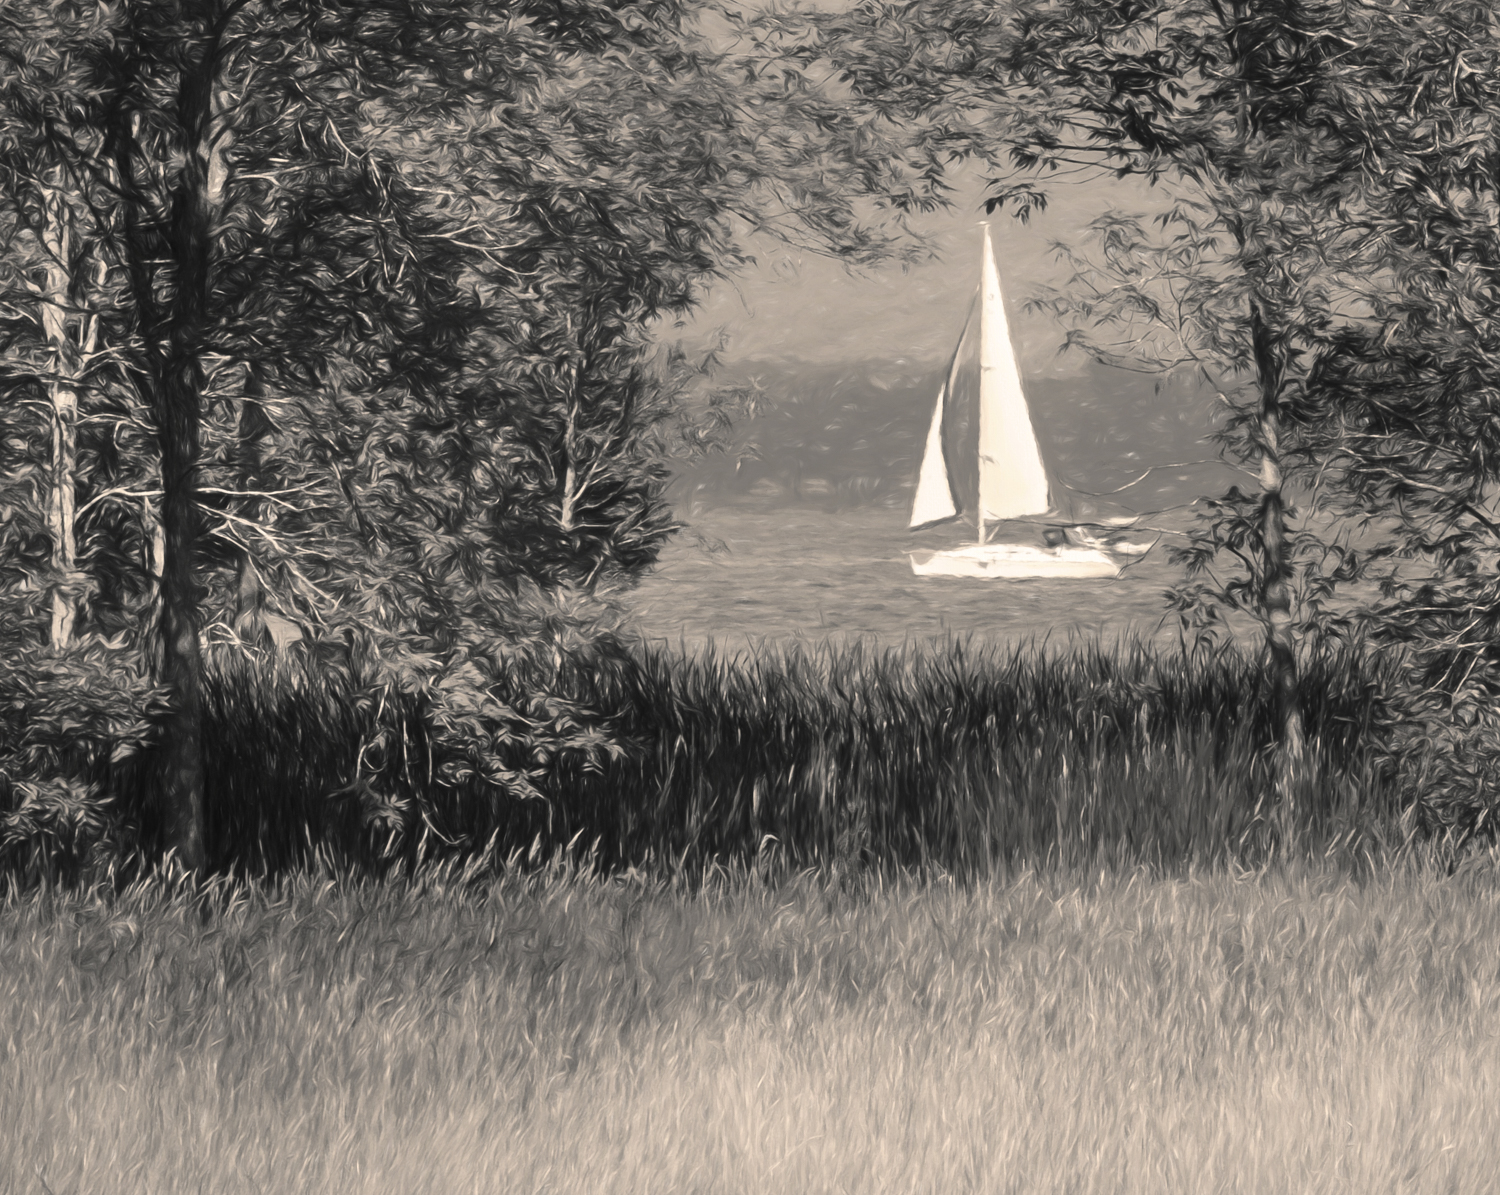 Sailing_by_Shelburne_Farms-